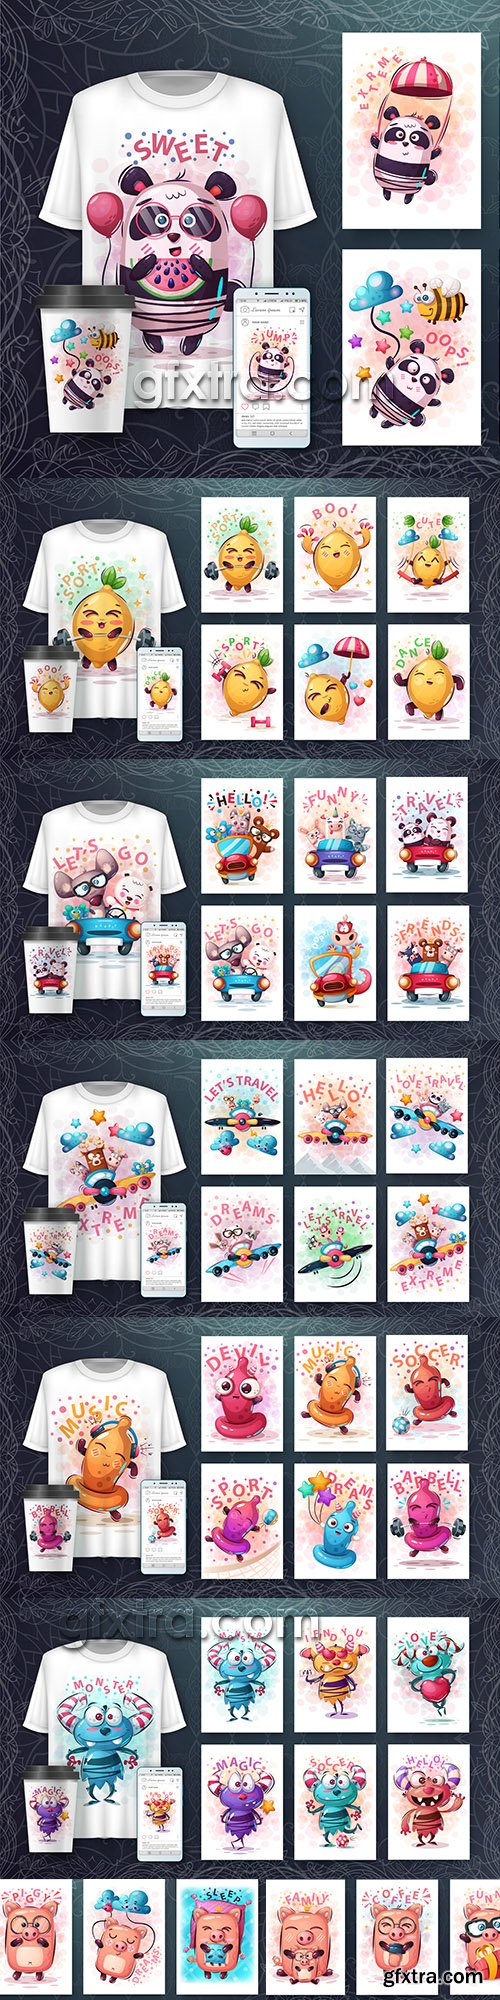 Design 3d t-shirts with mult funny characters